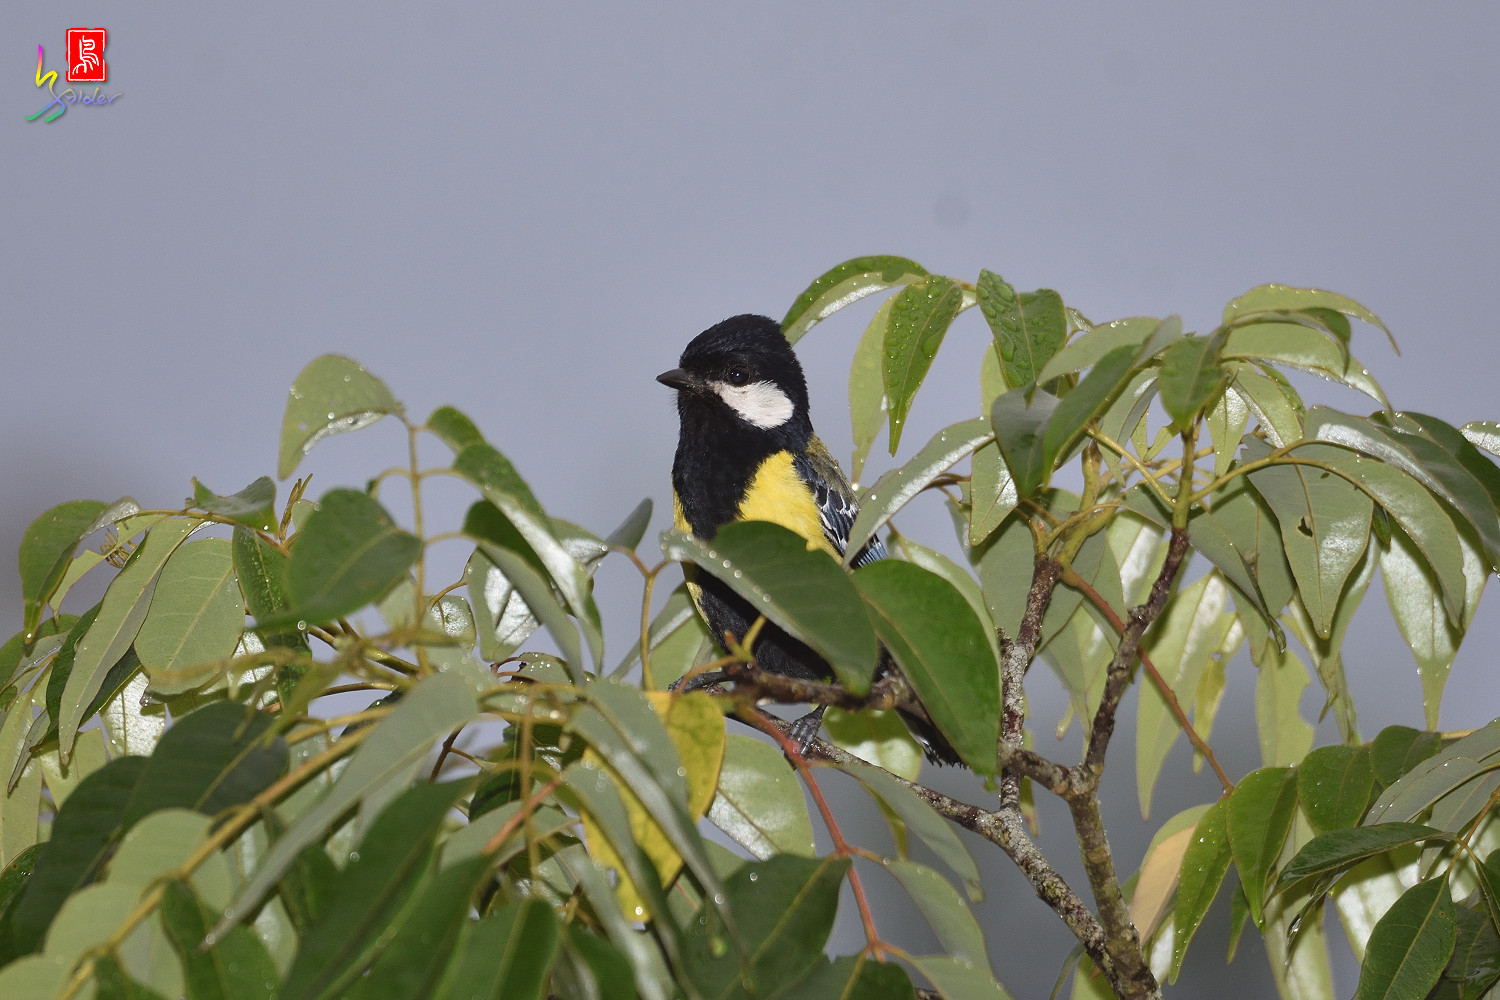 Green-backed_Tit_1160